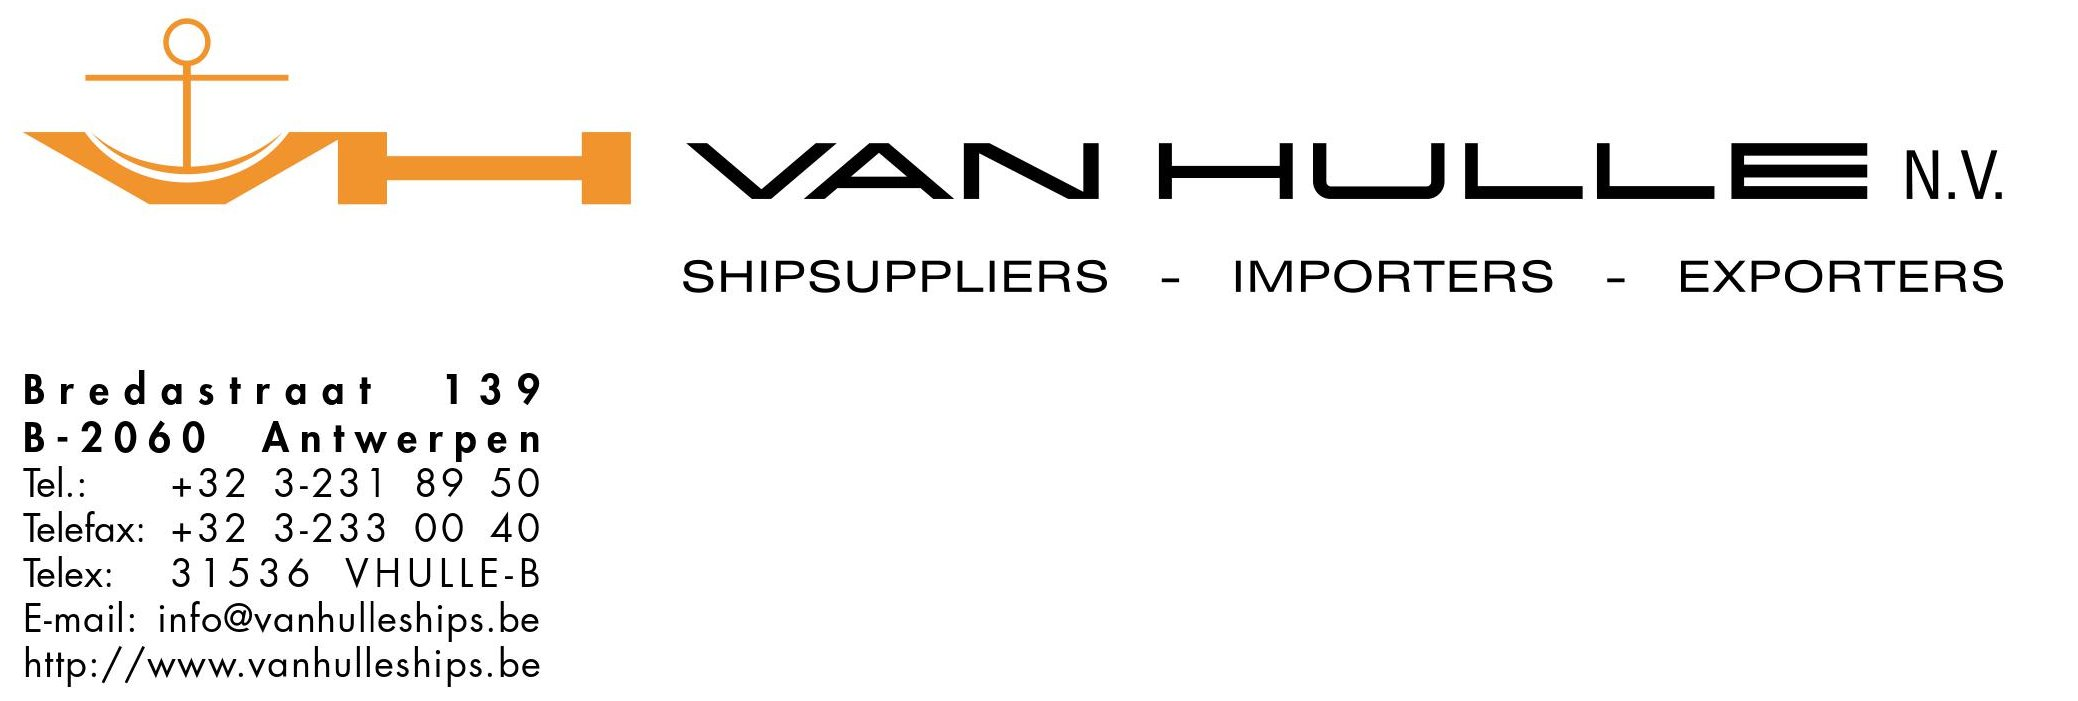 Van Hulle Shipsuppliers nv